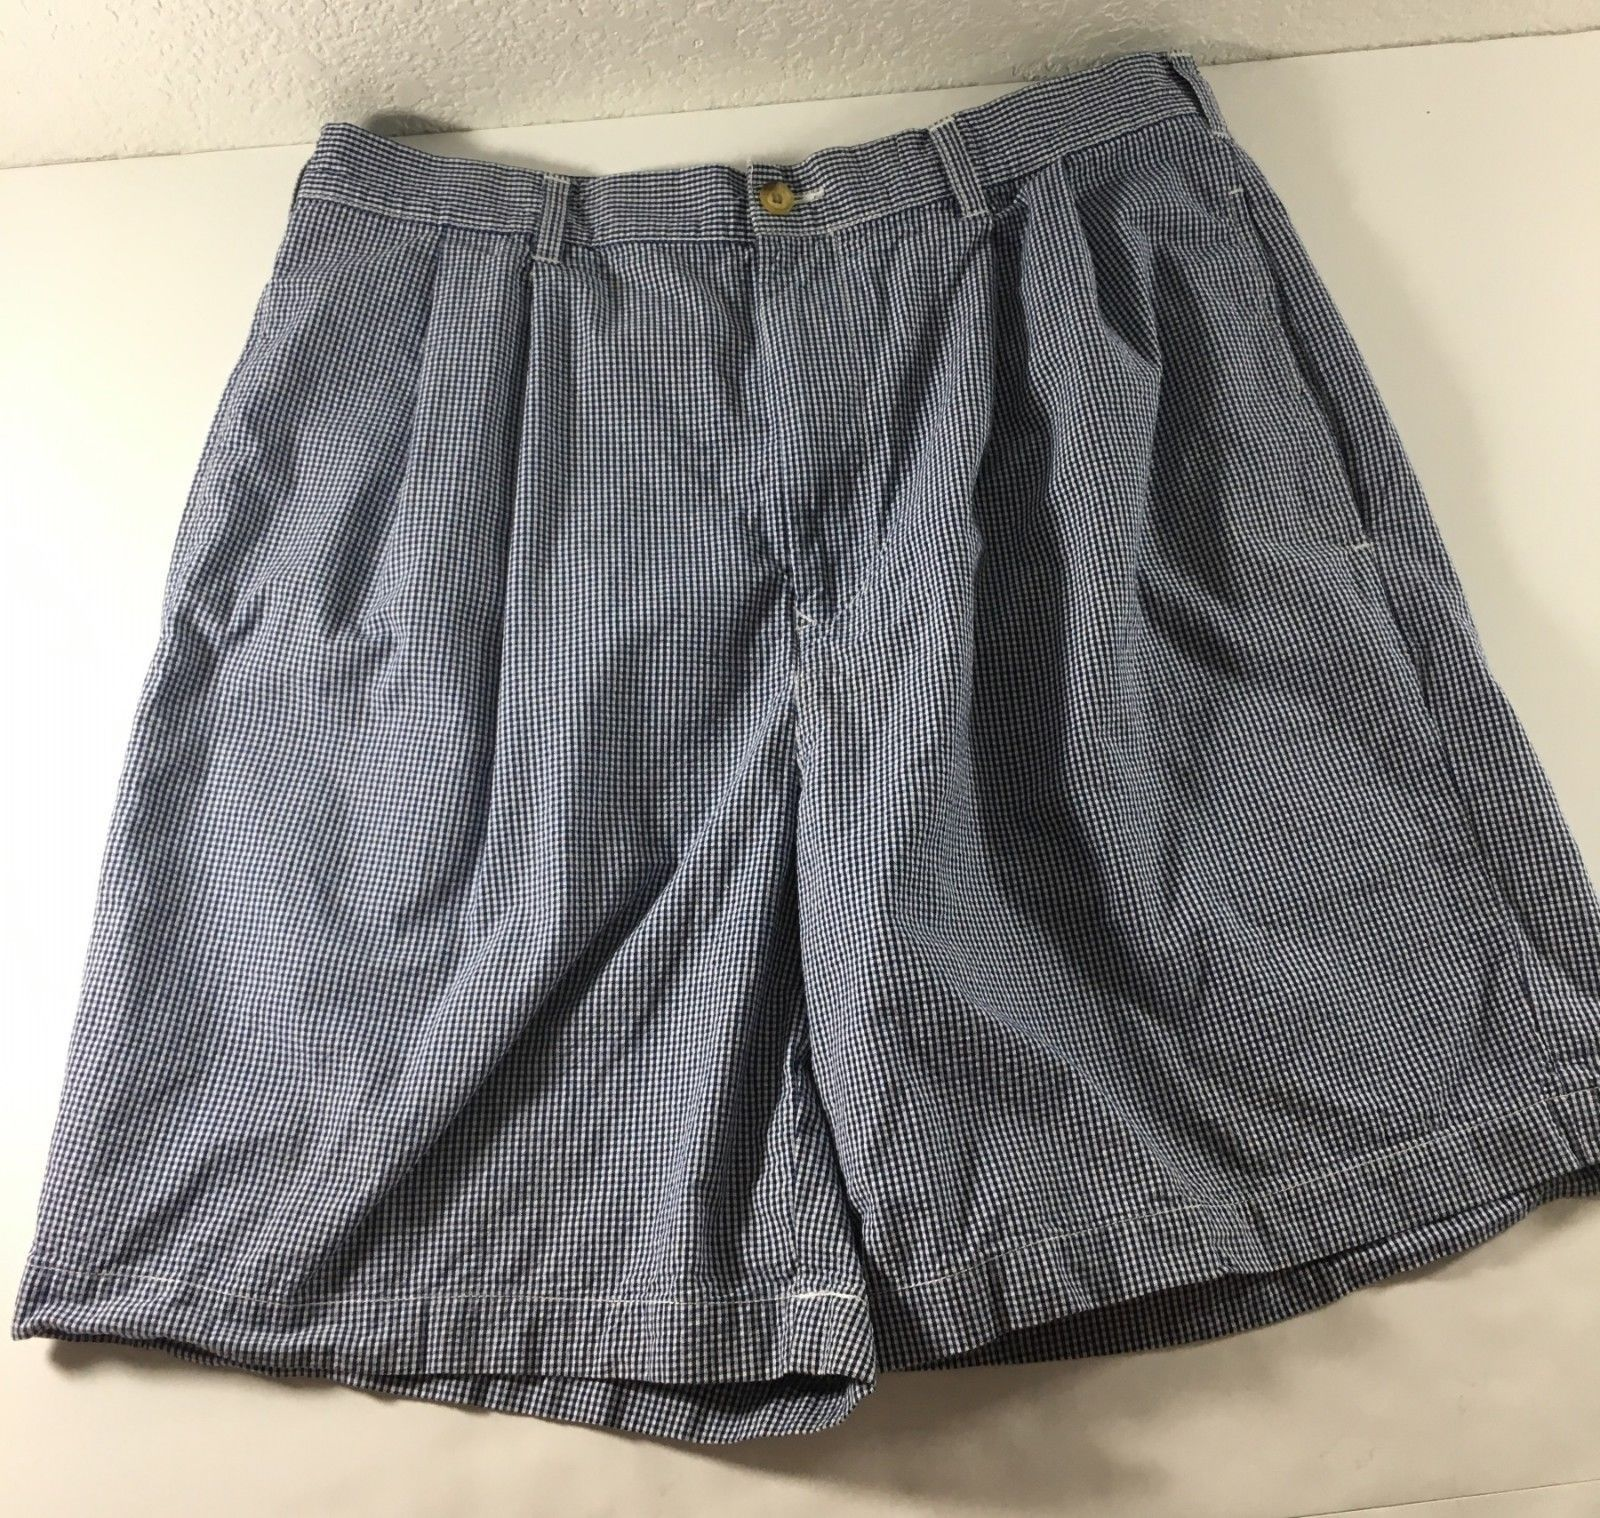 dc4dceb0 Tommy Hilfiger Mens Shorts Size 34 Blue and 50 similar items. 57